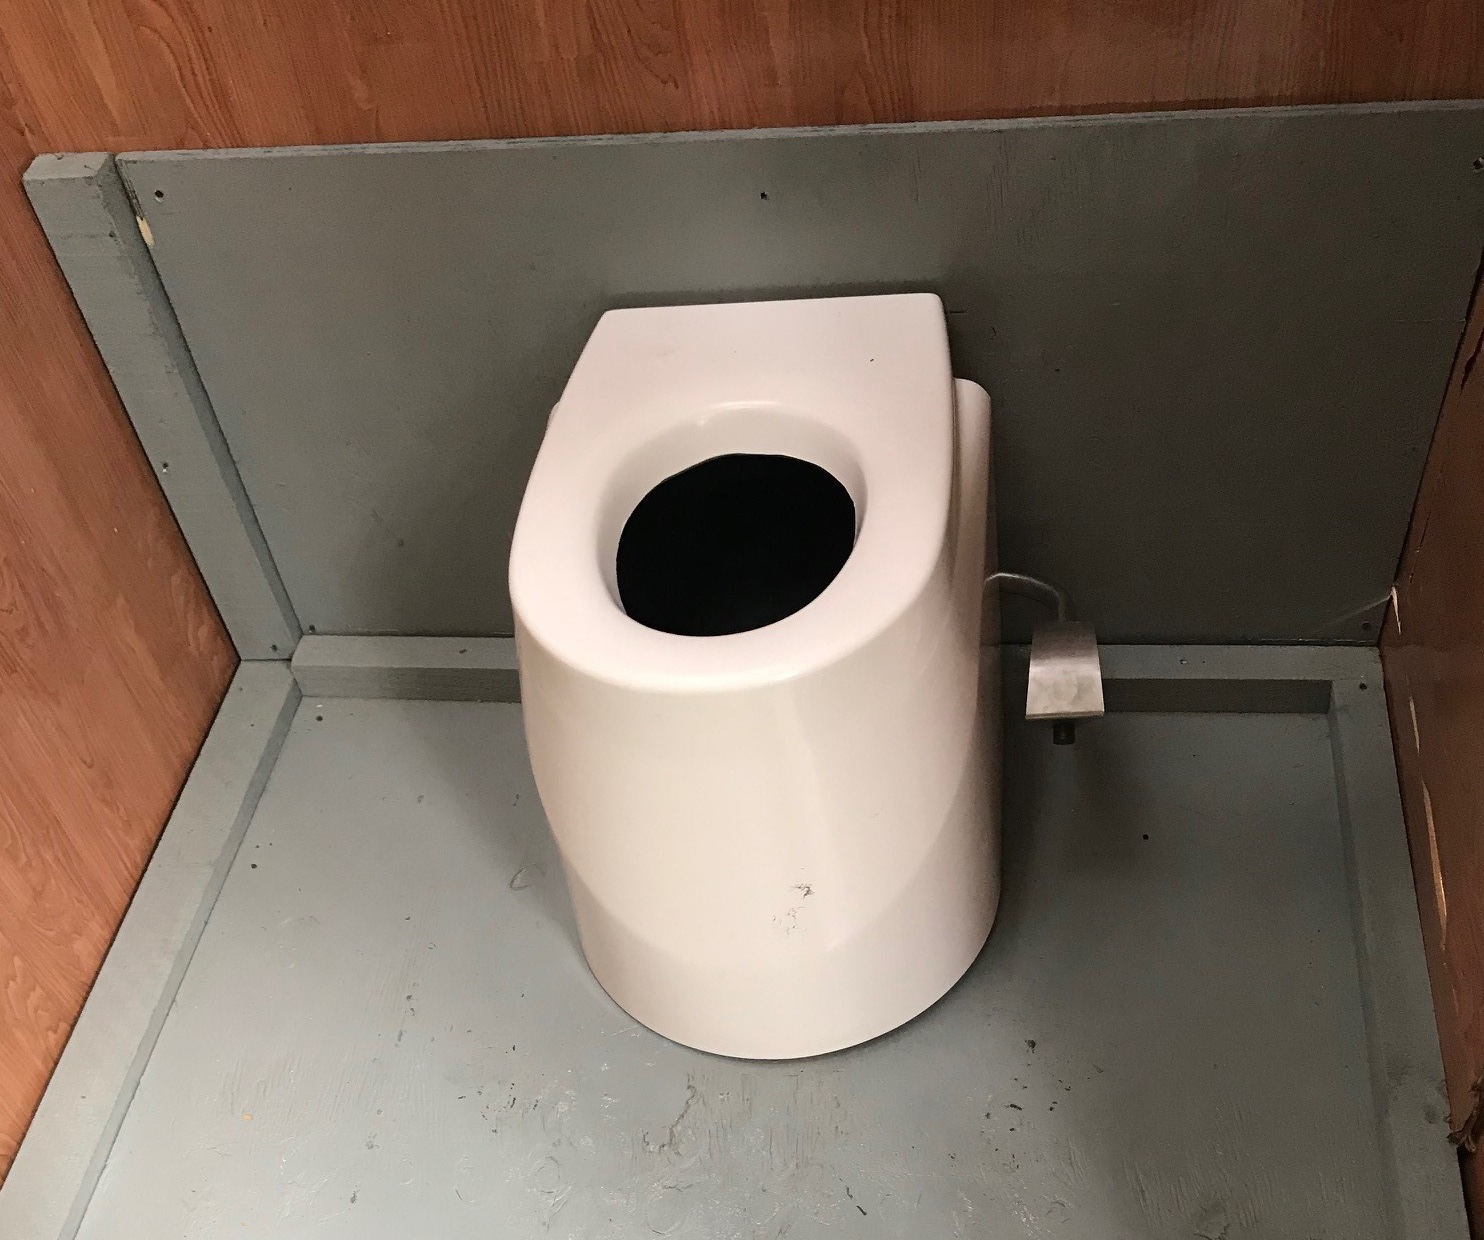 The new unit looks like a standard toilet on the input side